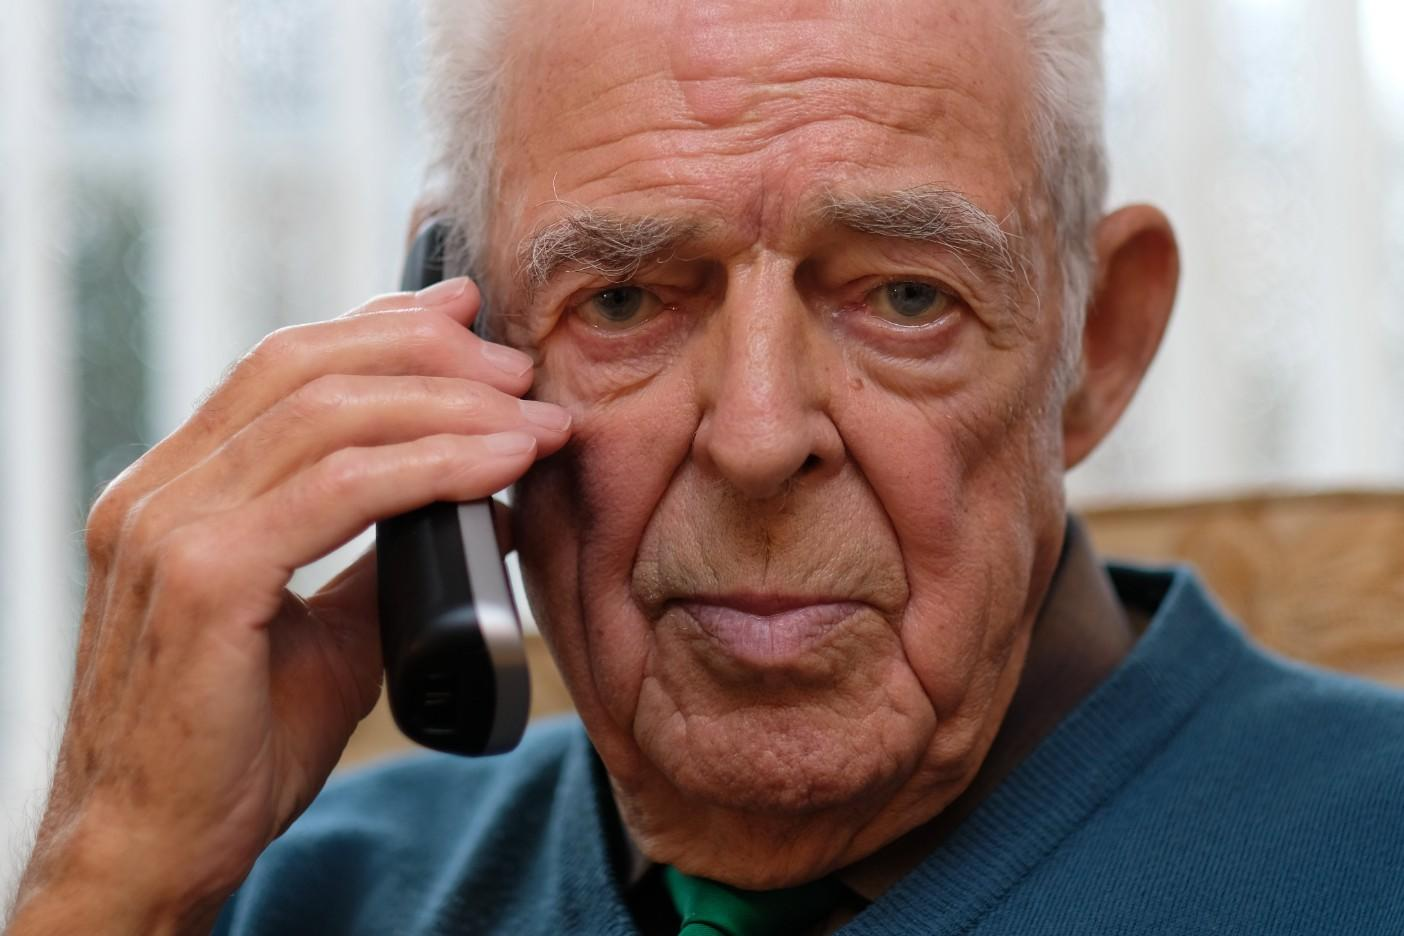 Strangers raise £15,000 for 91-year-old man after phone scammers tricked him out of his life savings